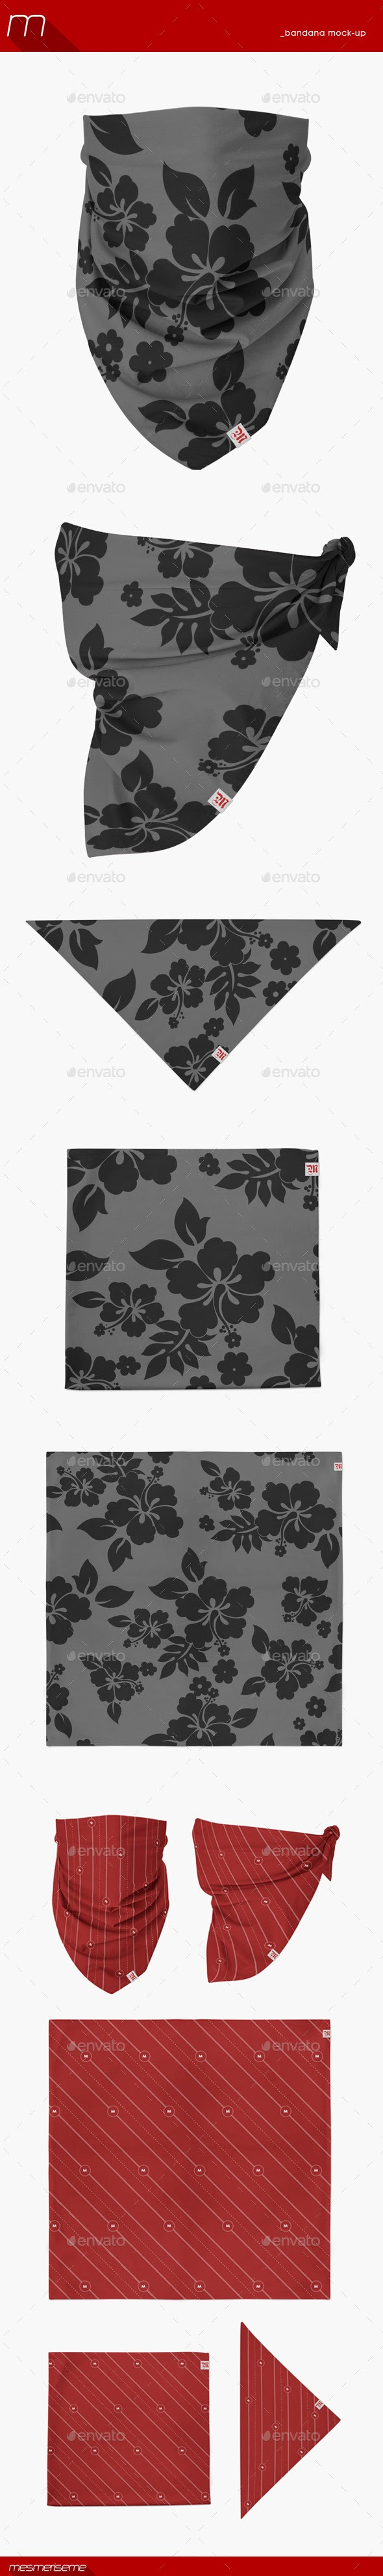 Download Free 2804+ Bandana Mockup Free Download Yellowimages Mockups these mockups if you need to present your logo and other branding projects.